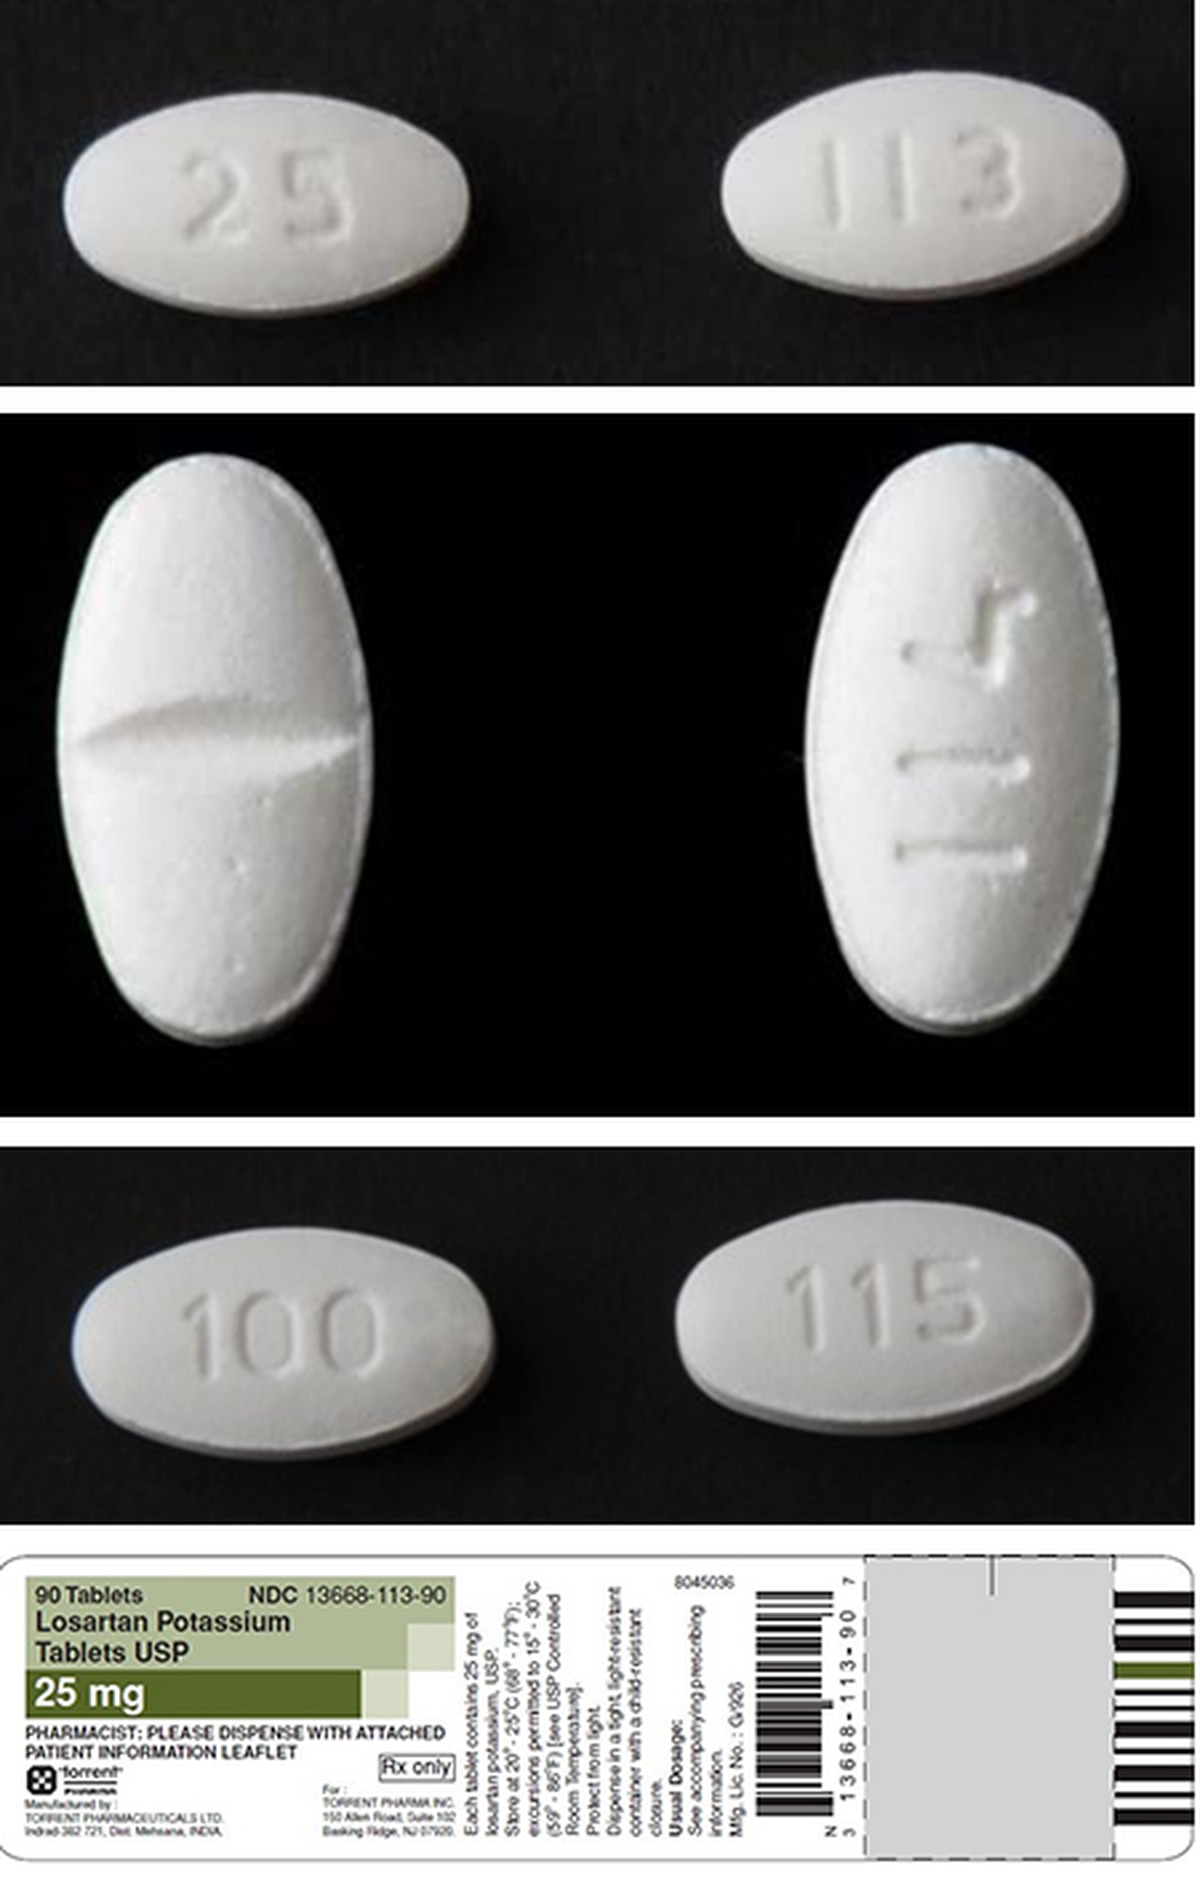 Torrent Pharmaceuticals Limited Expands Recall Of Losartan